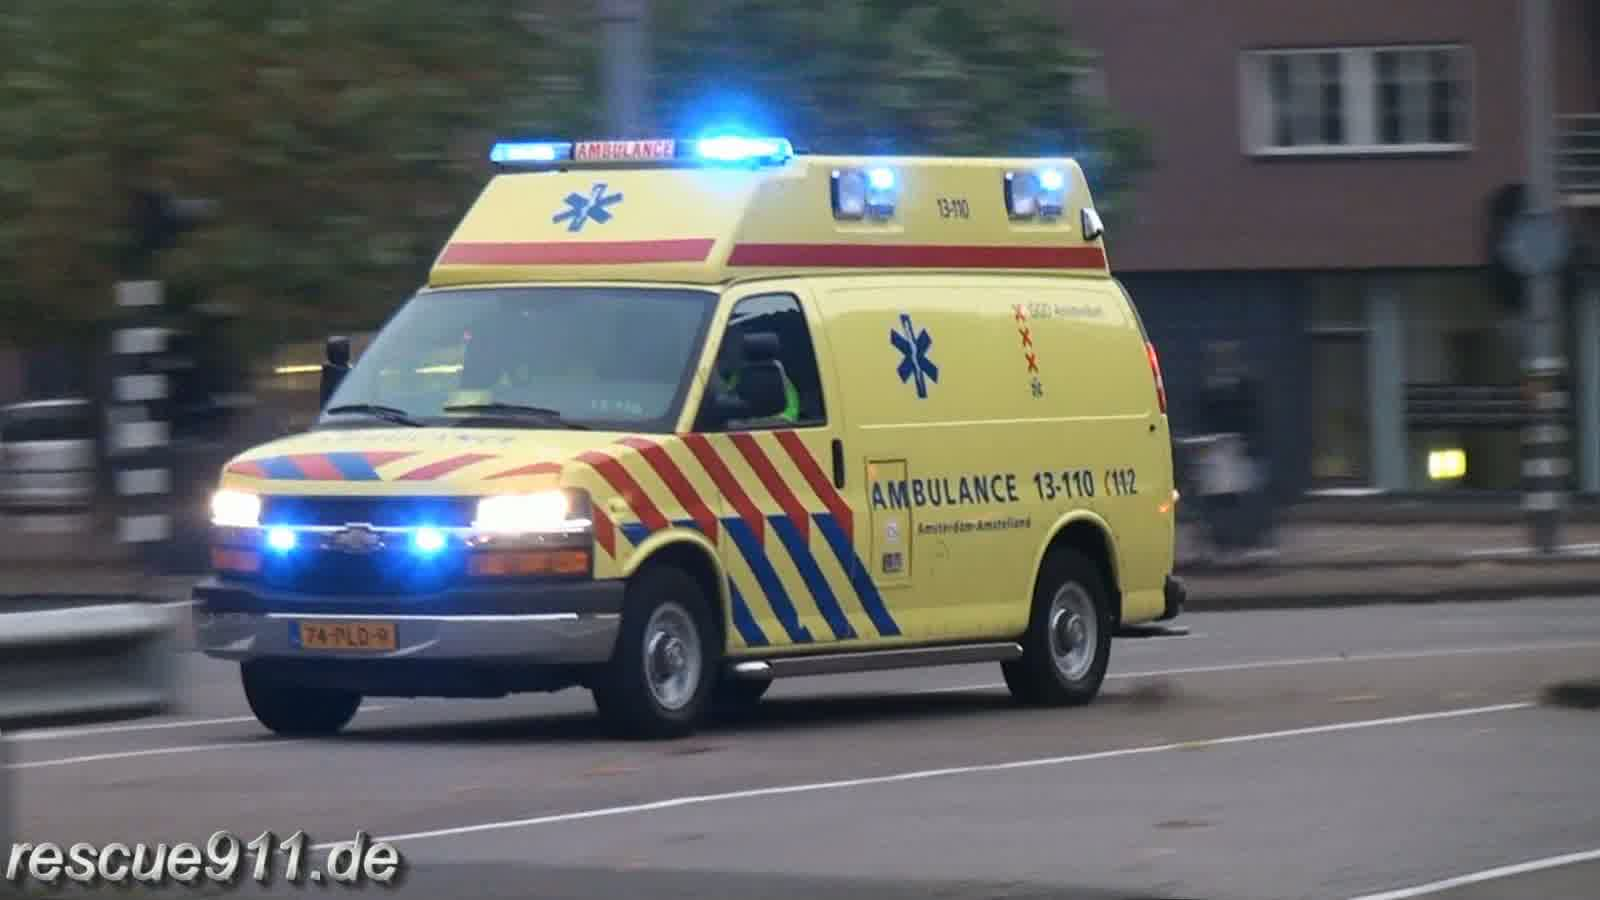 Ambulance GGD Amsterdam (collection) (stream)